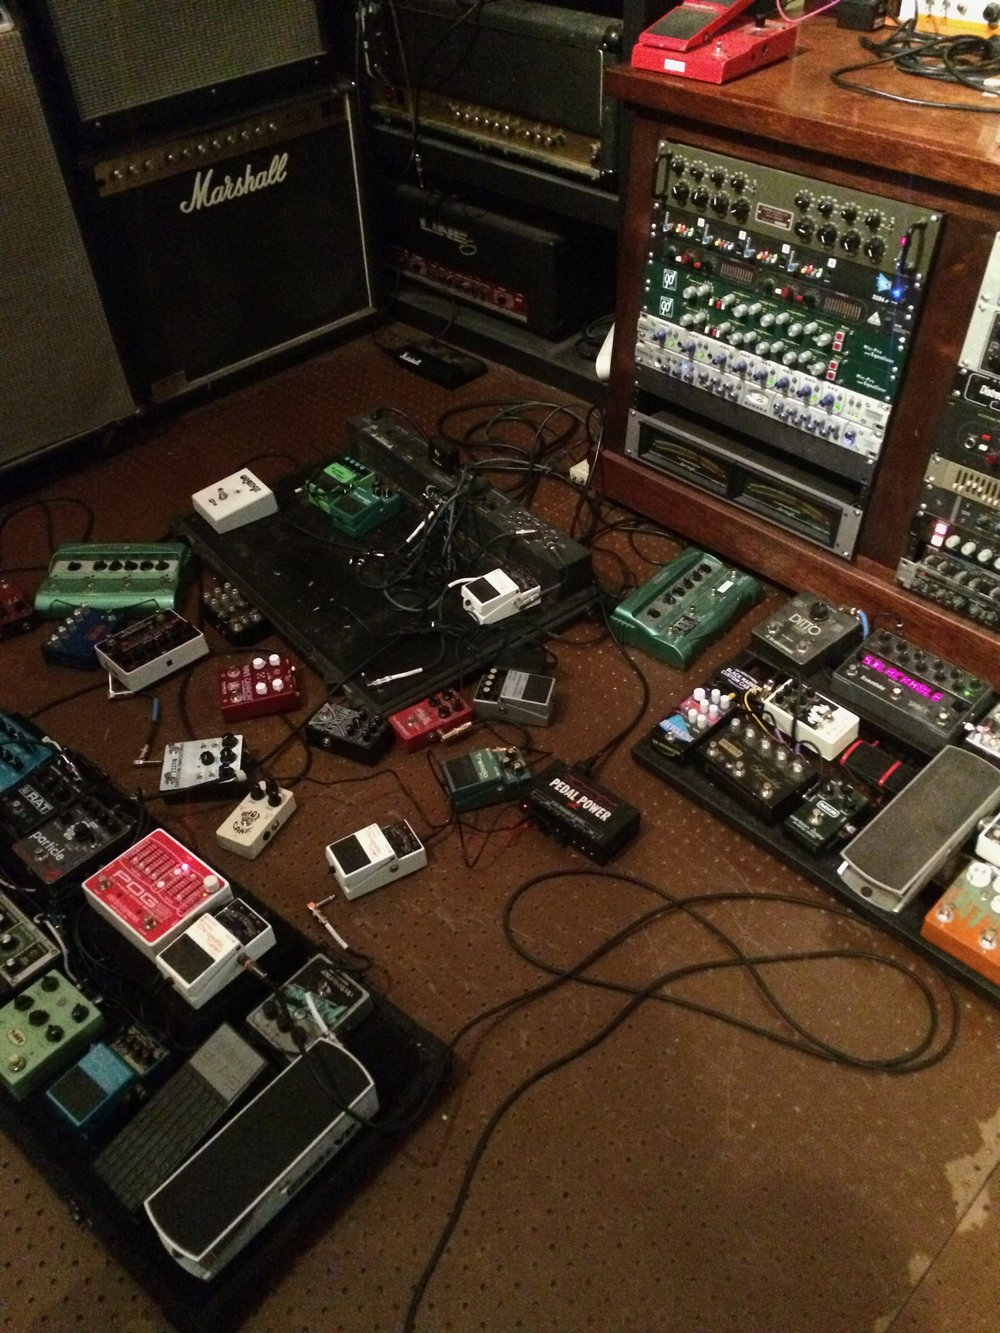 Some of the pedals and rack gear used on Pareidolia, exploded on the floor just how I like it.